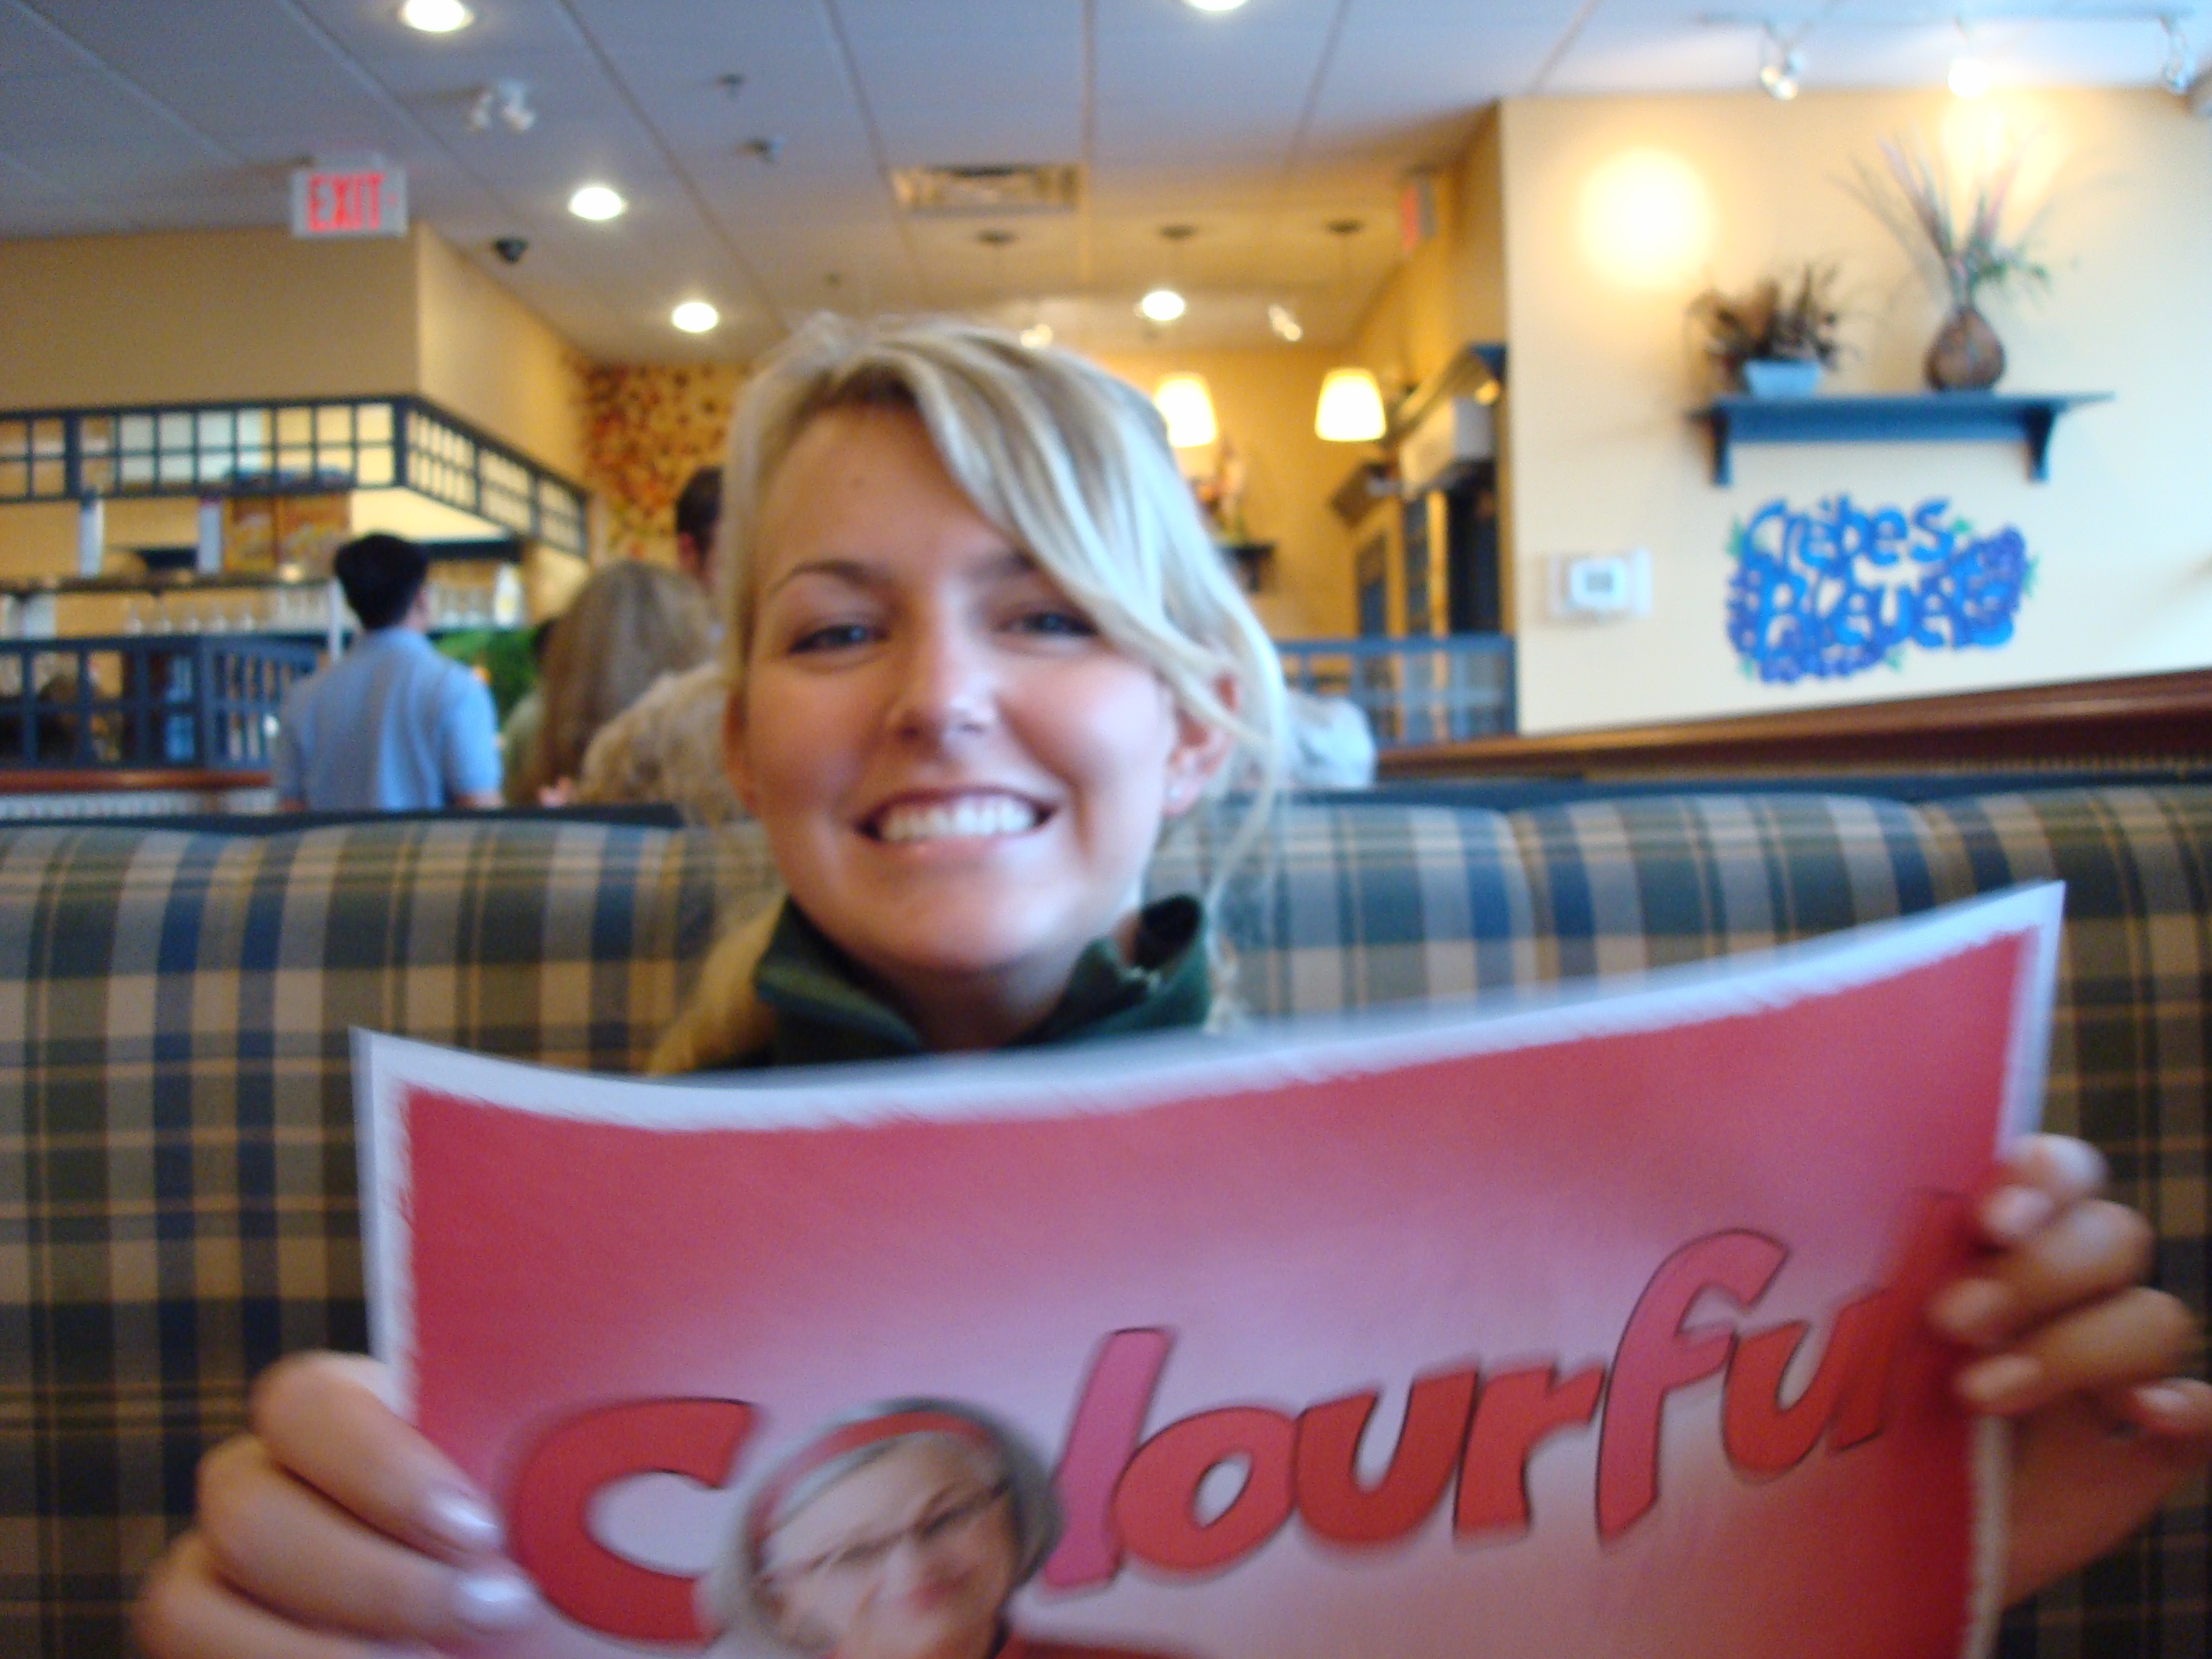 Breakfast at Cora's